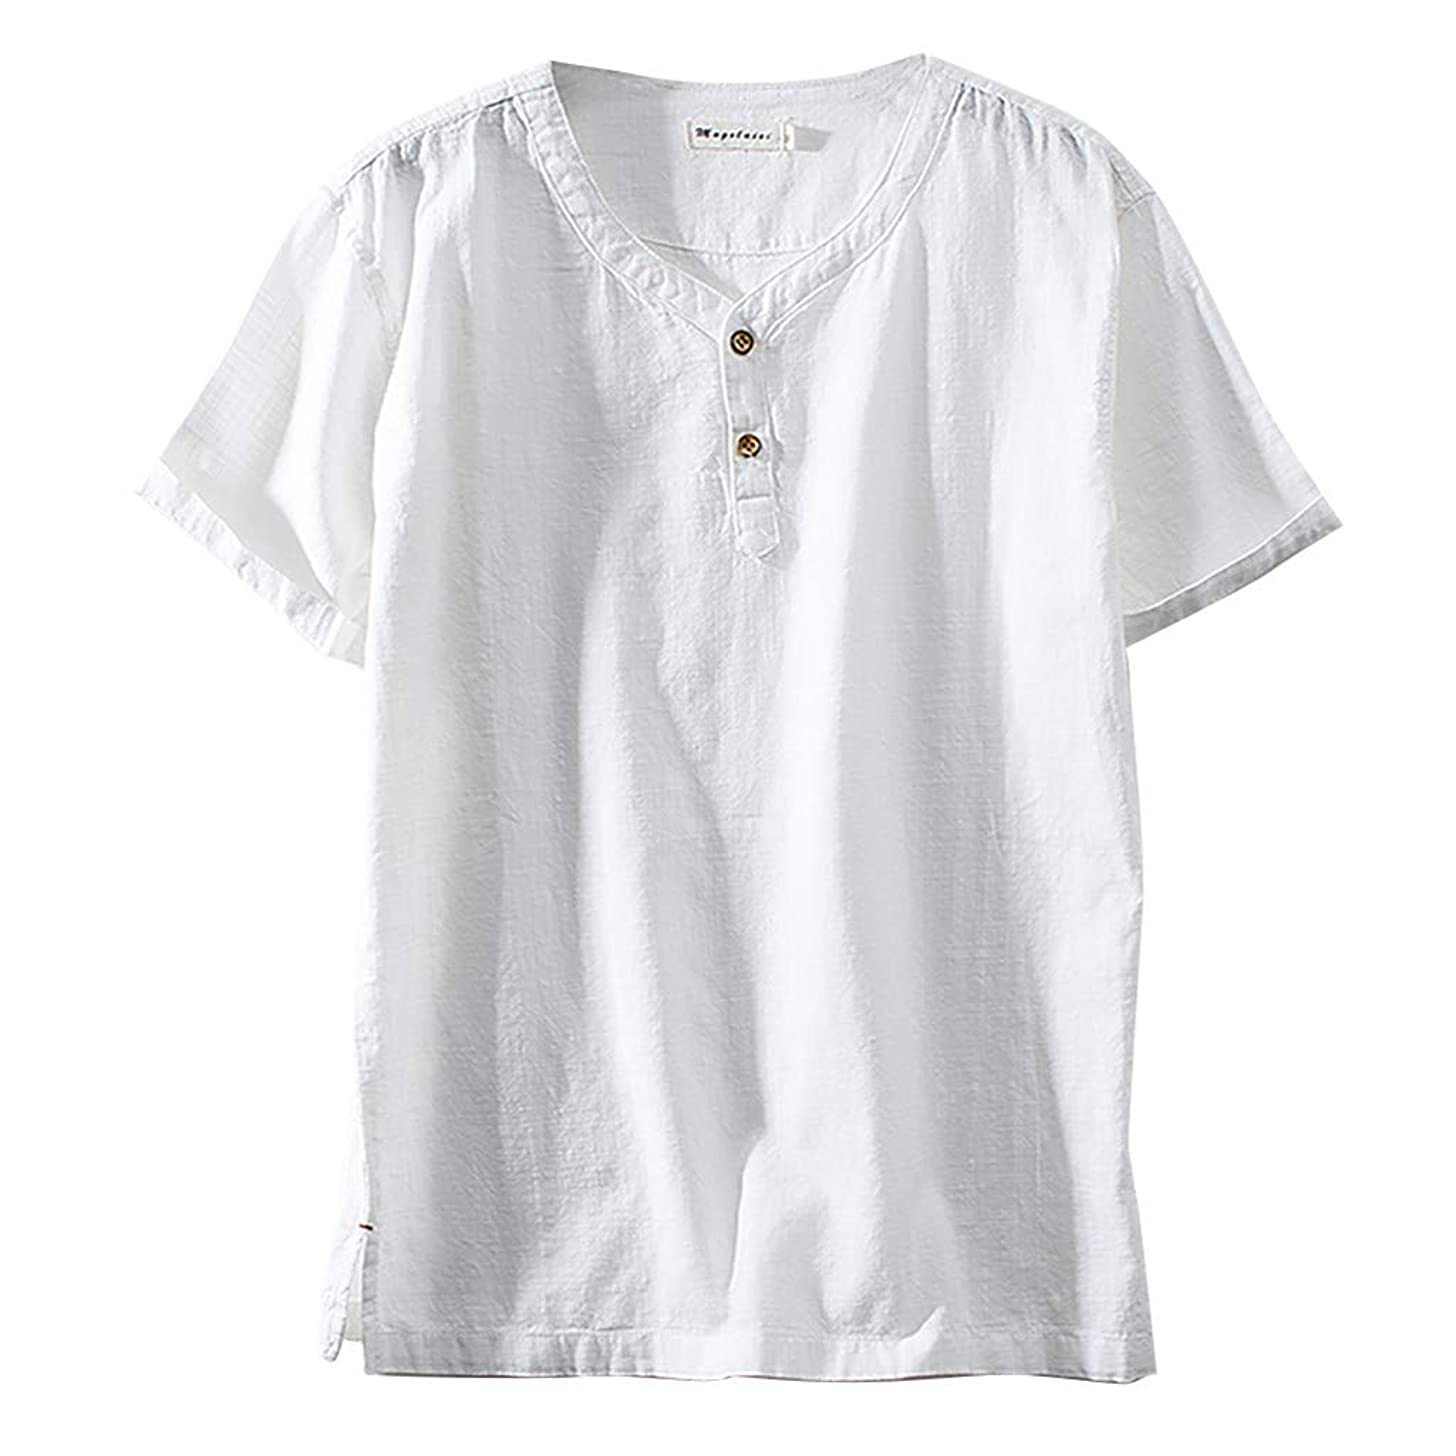 Dainzuy Shirts for Men Short Sleeve Linen and Cotton V Neck T-Shirts Casual Plus Size Lightweight Tee Loose Tops Blouse